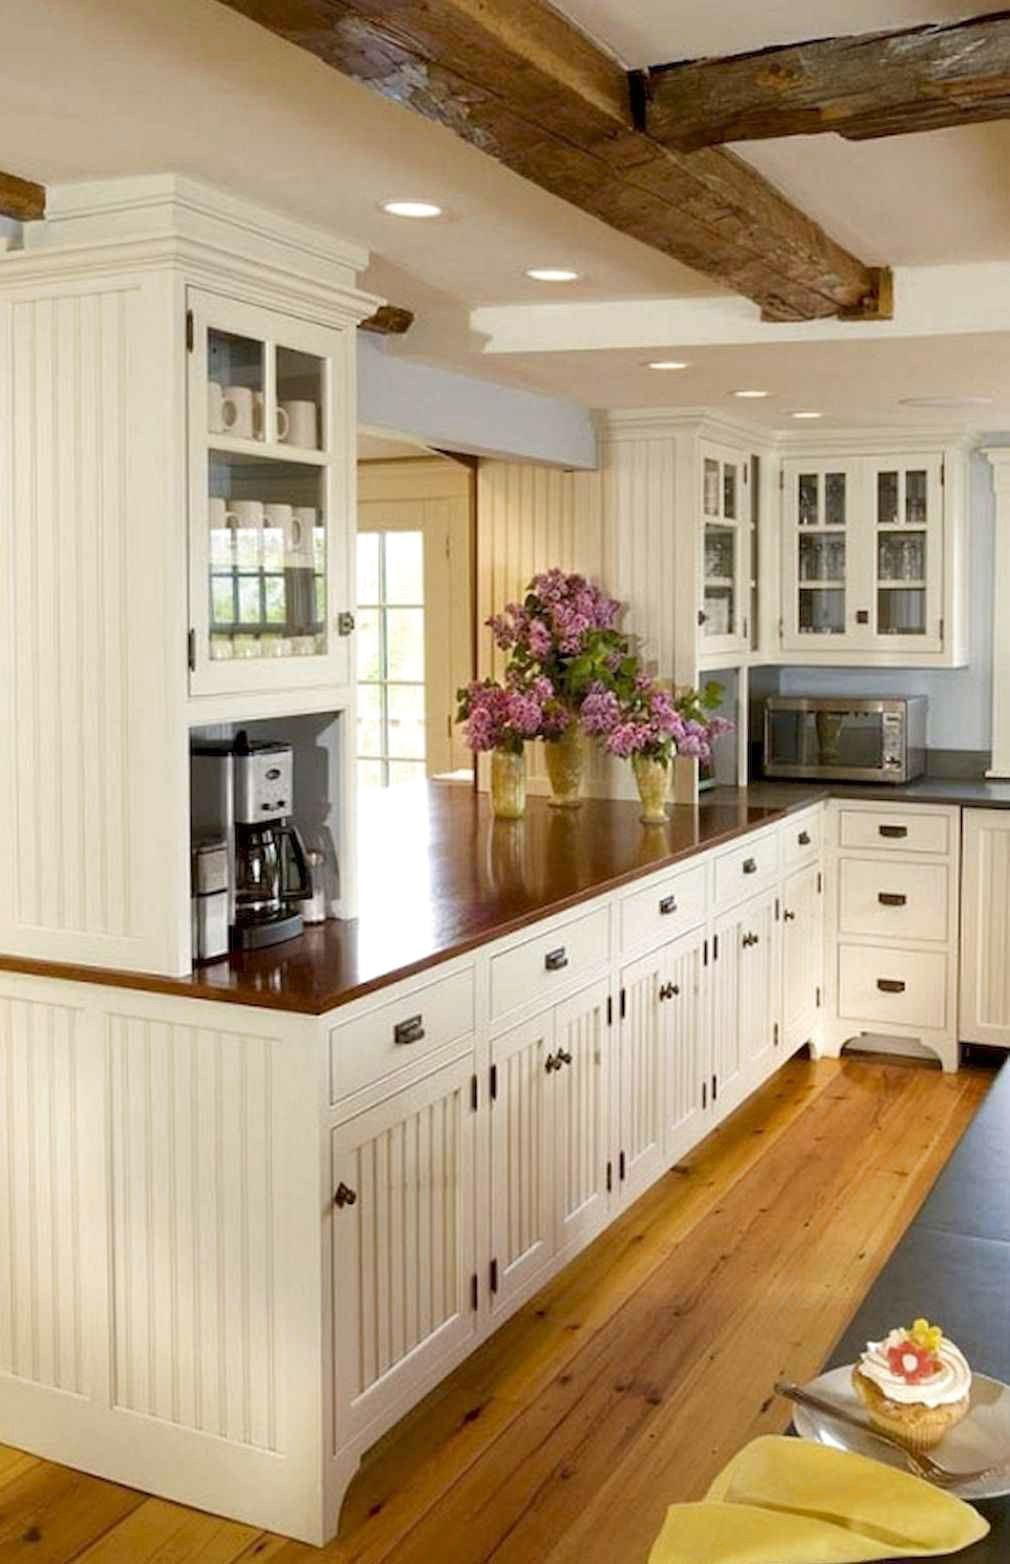 88 Amazing Farmhouse Kitchen Cabinet Design Ideas - Country cottage kitchen, Traditional white kitchen cabinets, White kitchen traditional, Farmhouse style kitchen, Kitchen cabinet design, Kitchen design - Kitchen cabinets are the initial subject that people want to notice about your kitchen when they go into the rubric, and you want to justify that you have the right cupboard to look good and functional all  If you want… Continue Reading →